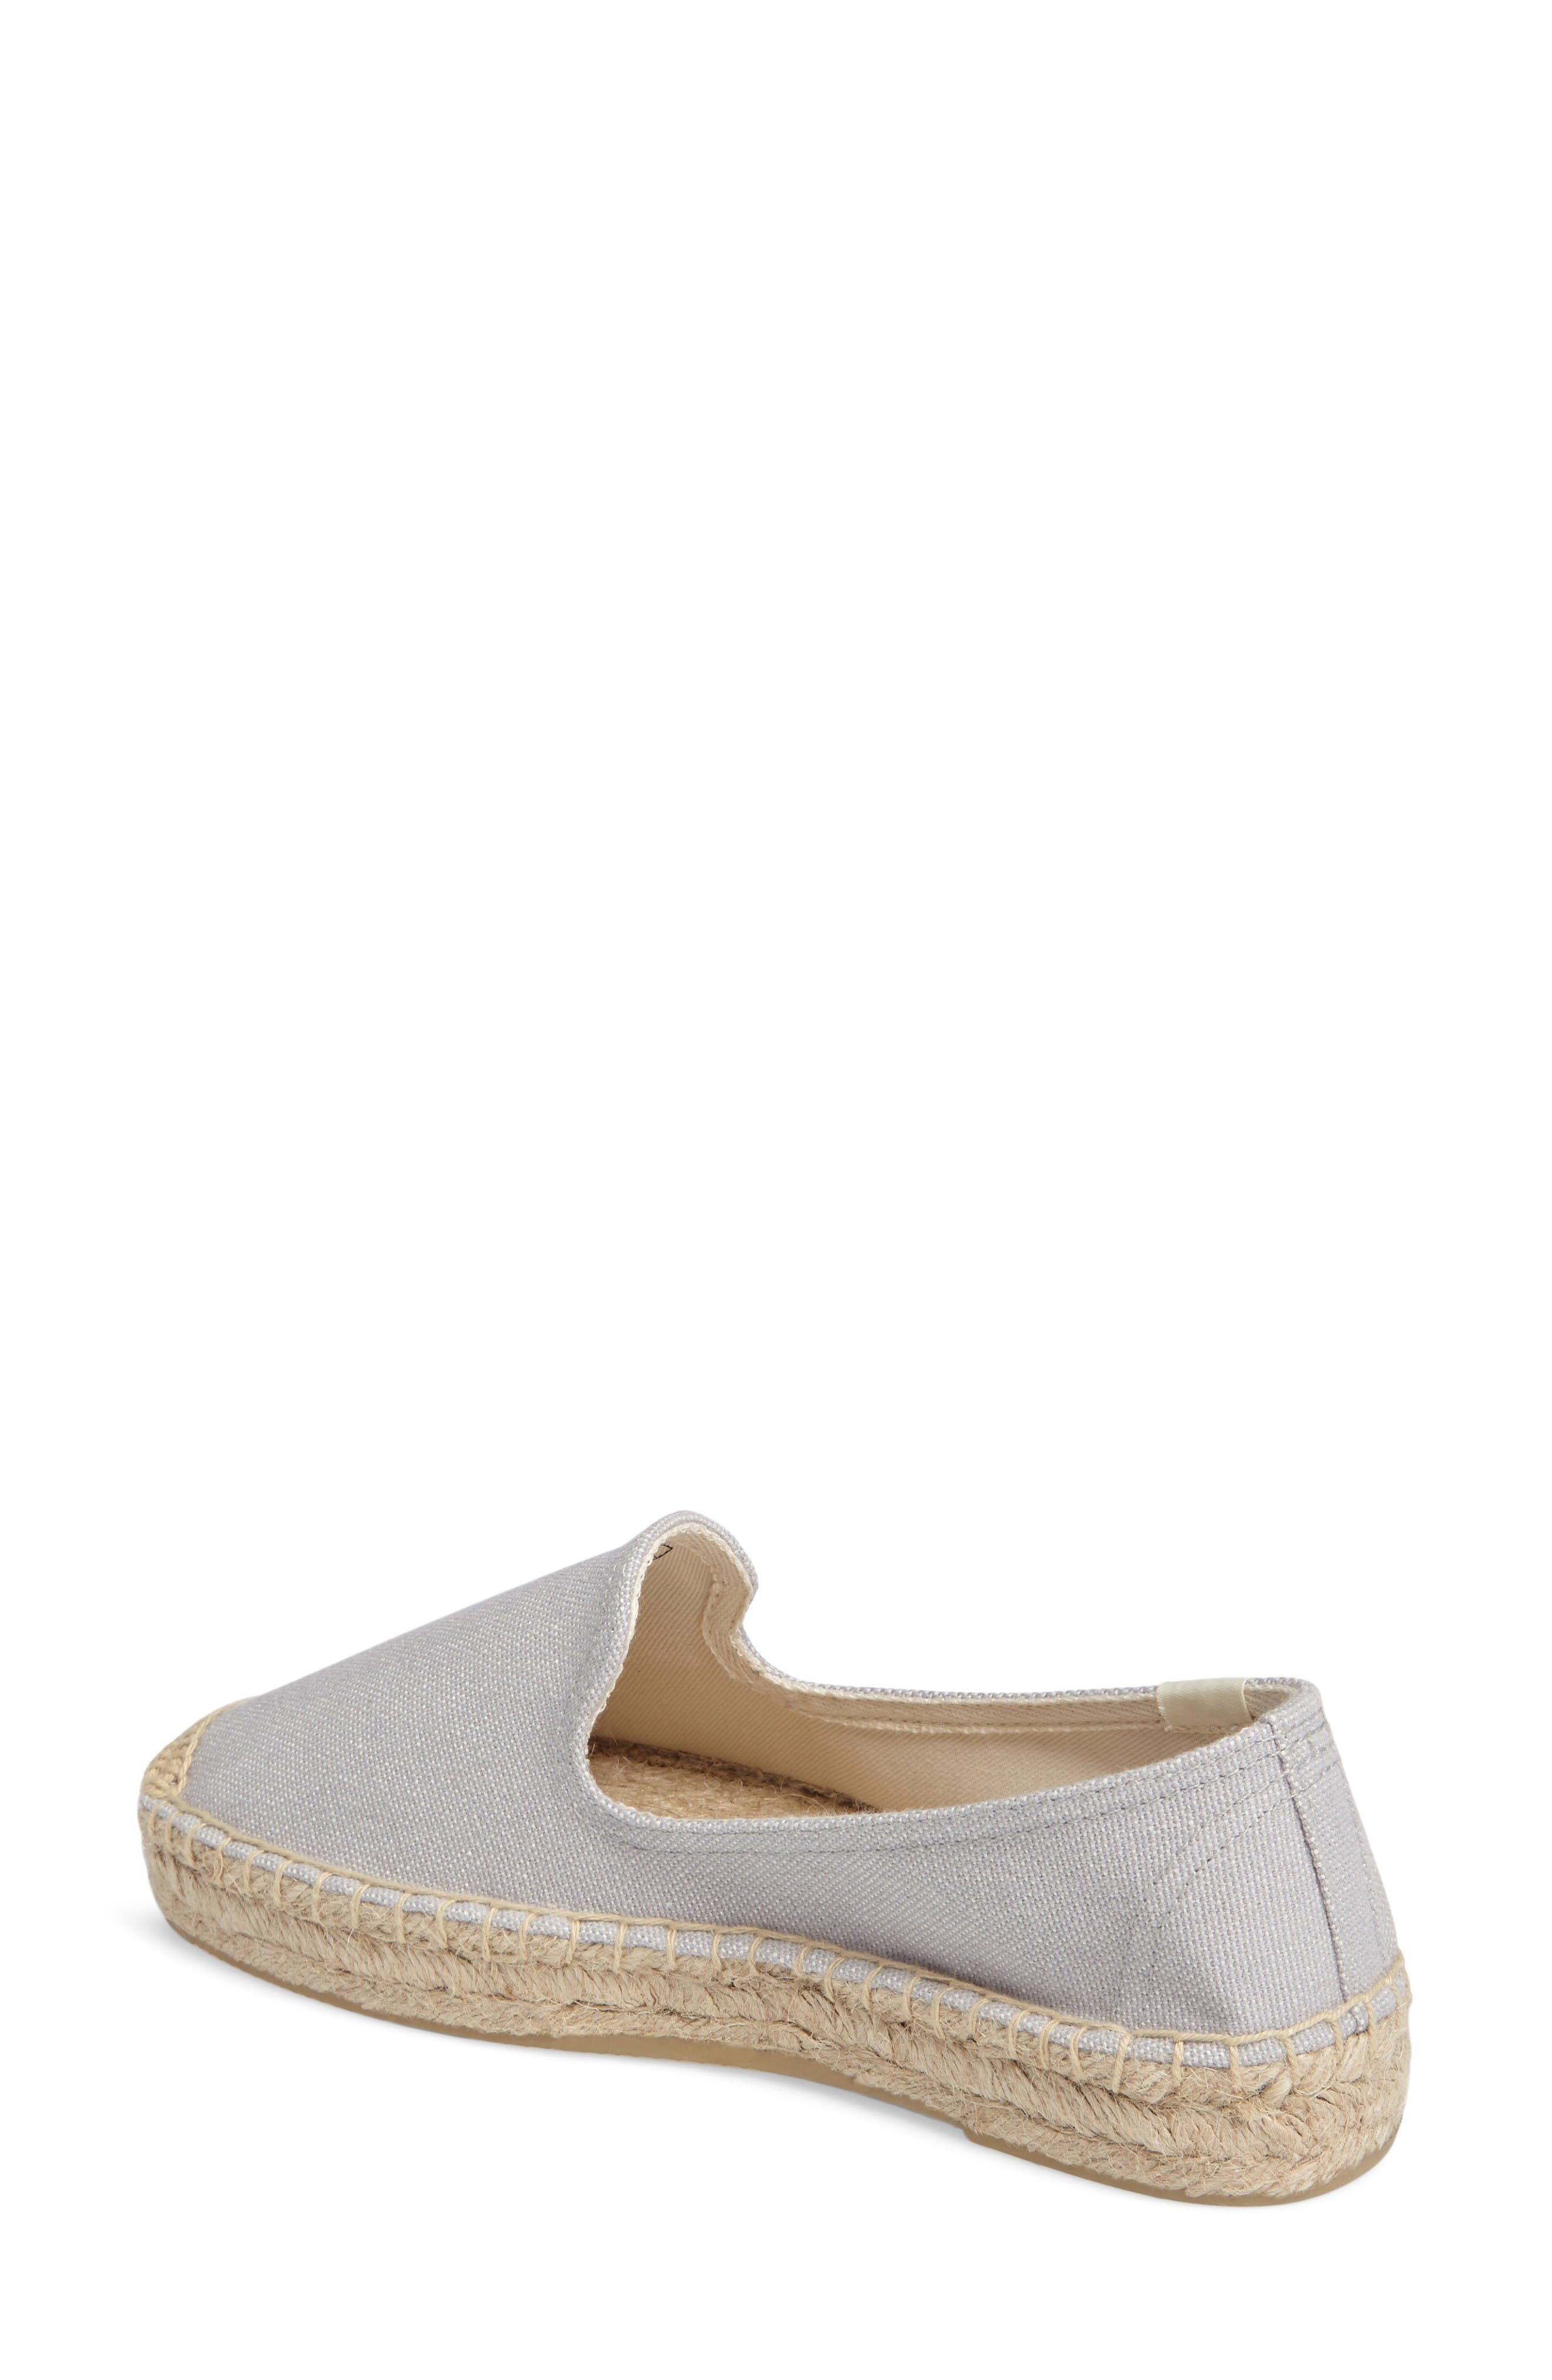 Alternate Image 2  - Soludos Espadrille Loafer (Women)